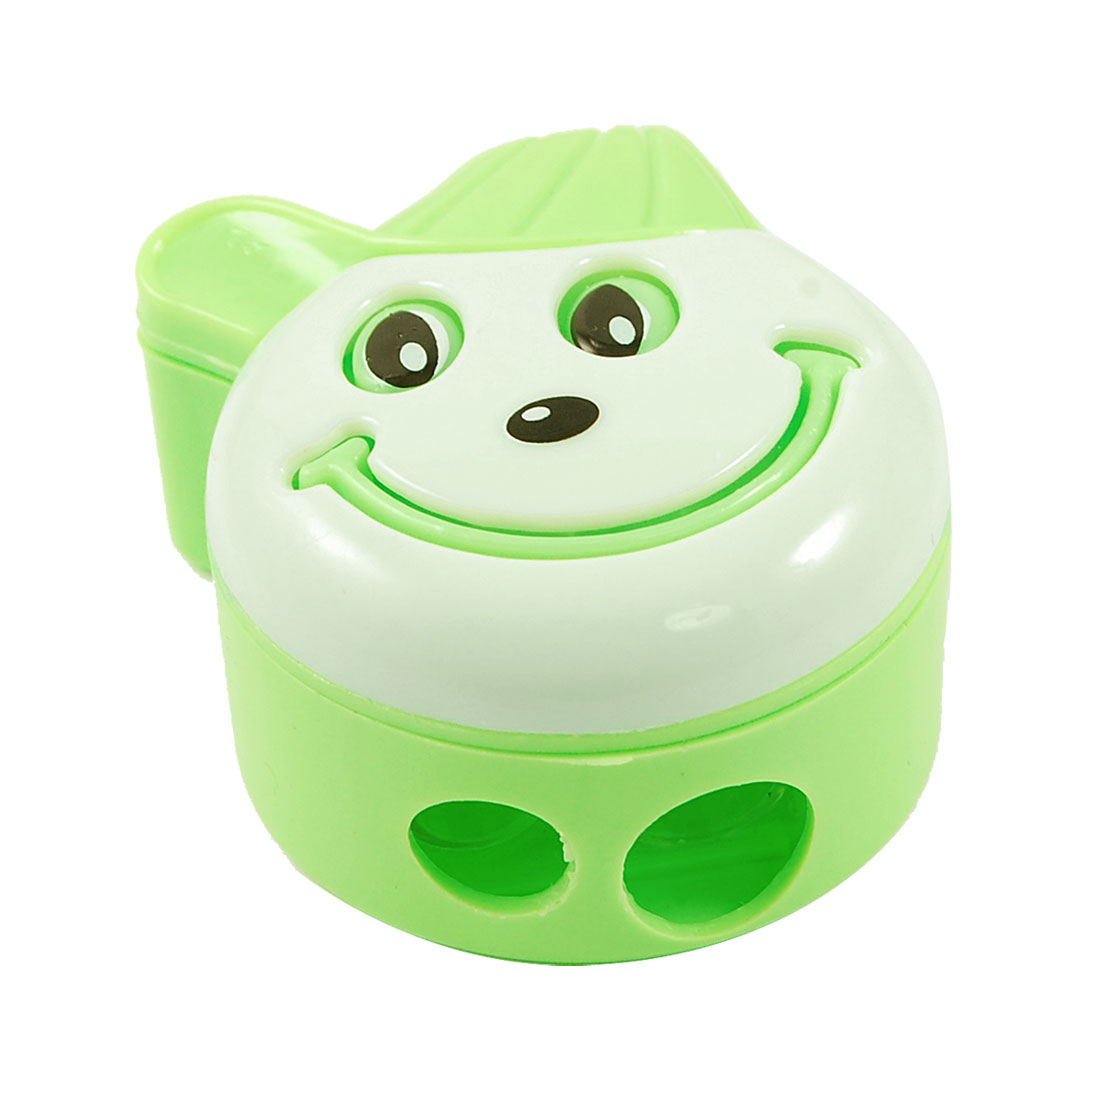 School Green Plastic Smiling Face Double Hole Pencil Sharpener